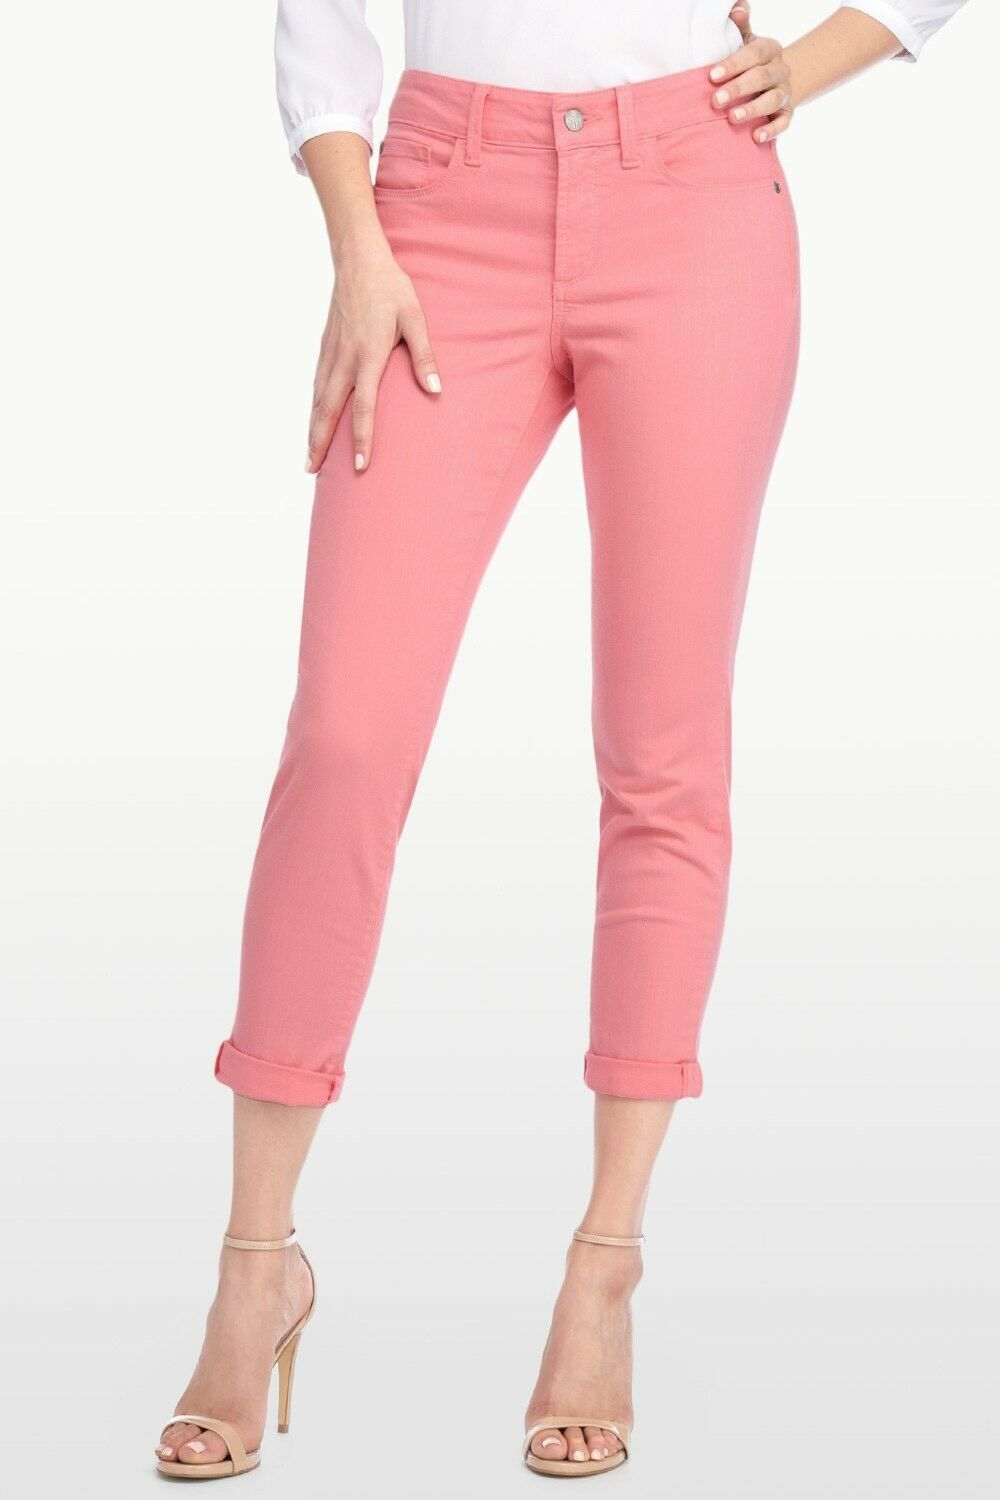 NYDJ Size 6 ALINA CONgreenIBLE ANKLE SKINNY SLIMMING JEANS PANTS PALE GUAVA NWT